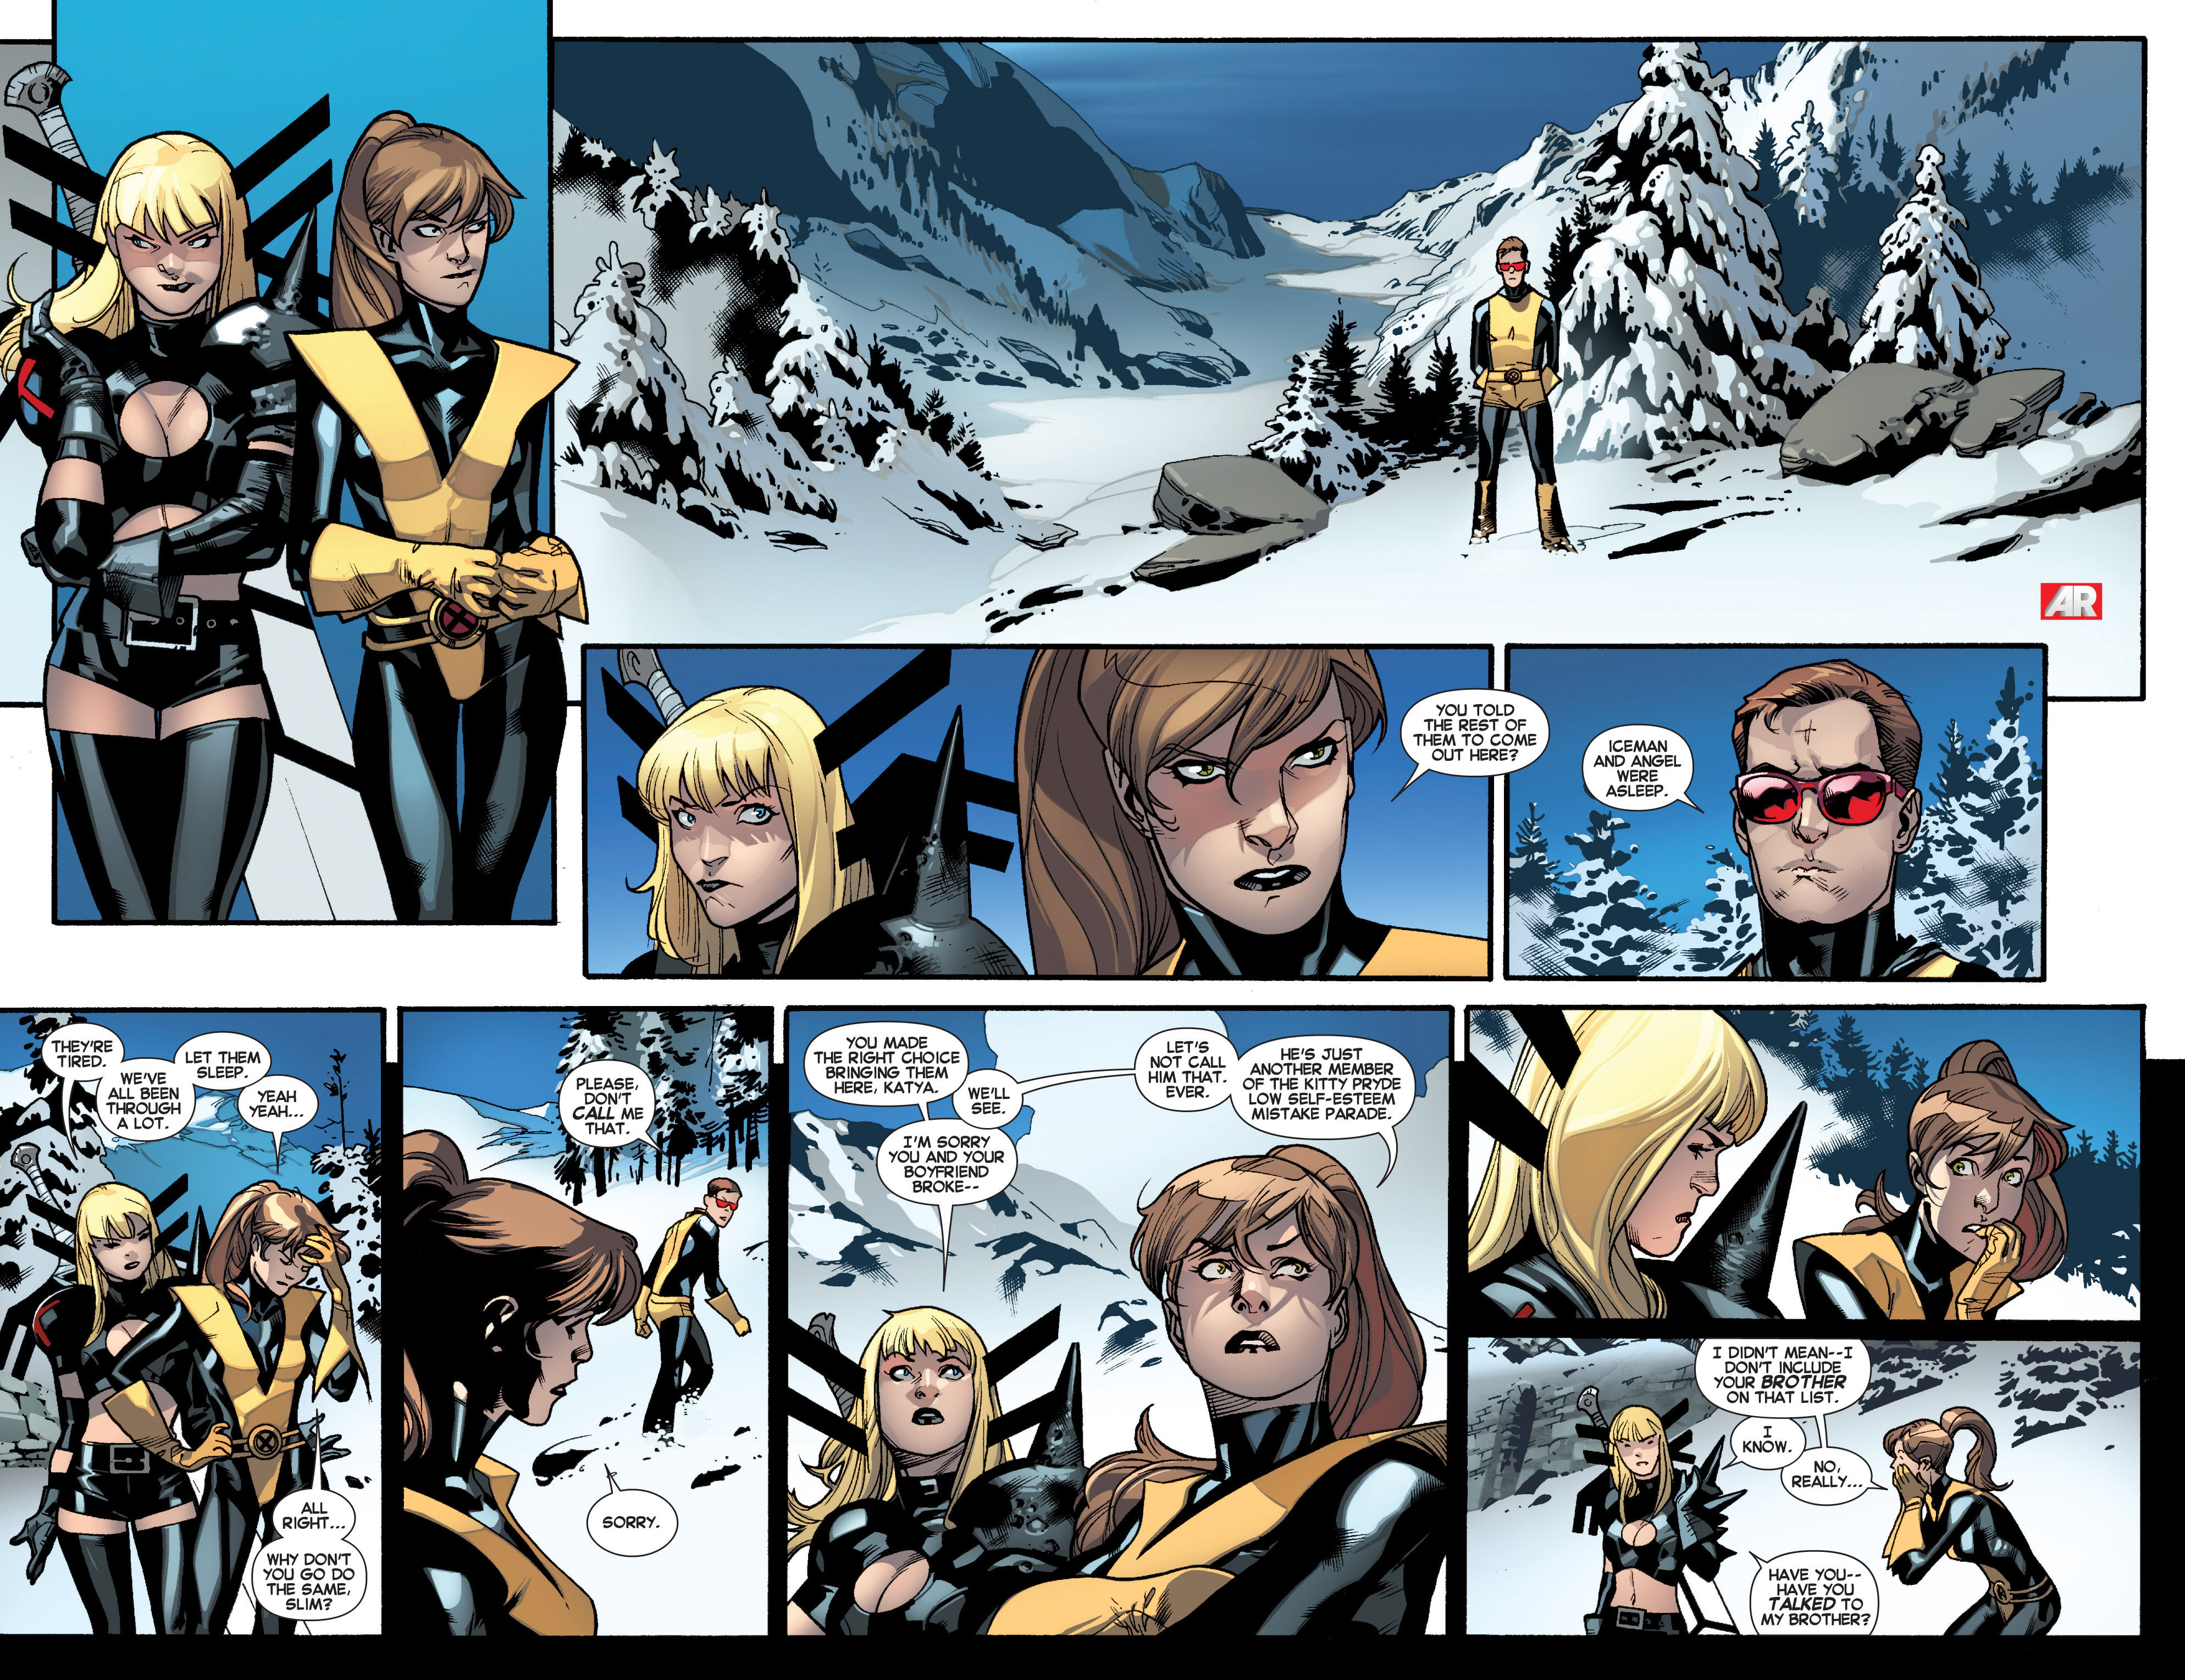 Read online All-New X-Men (2013) comic -  Issue # _Special - All-Different - 13